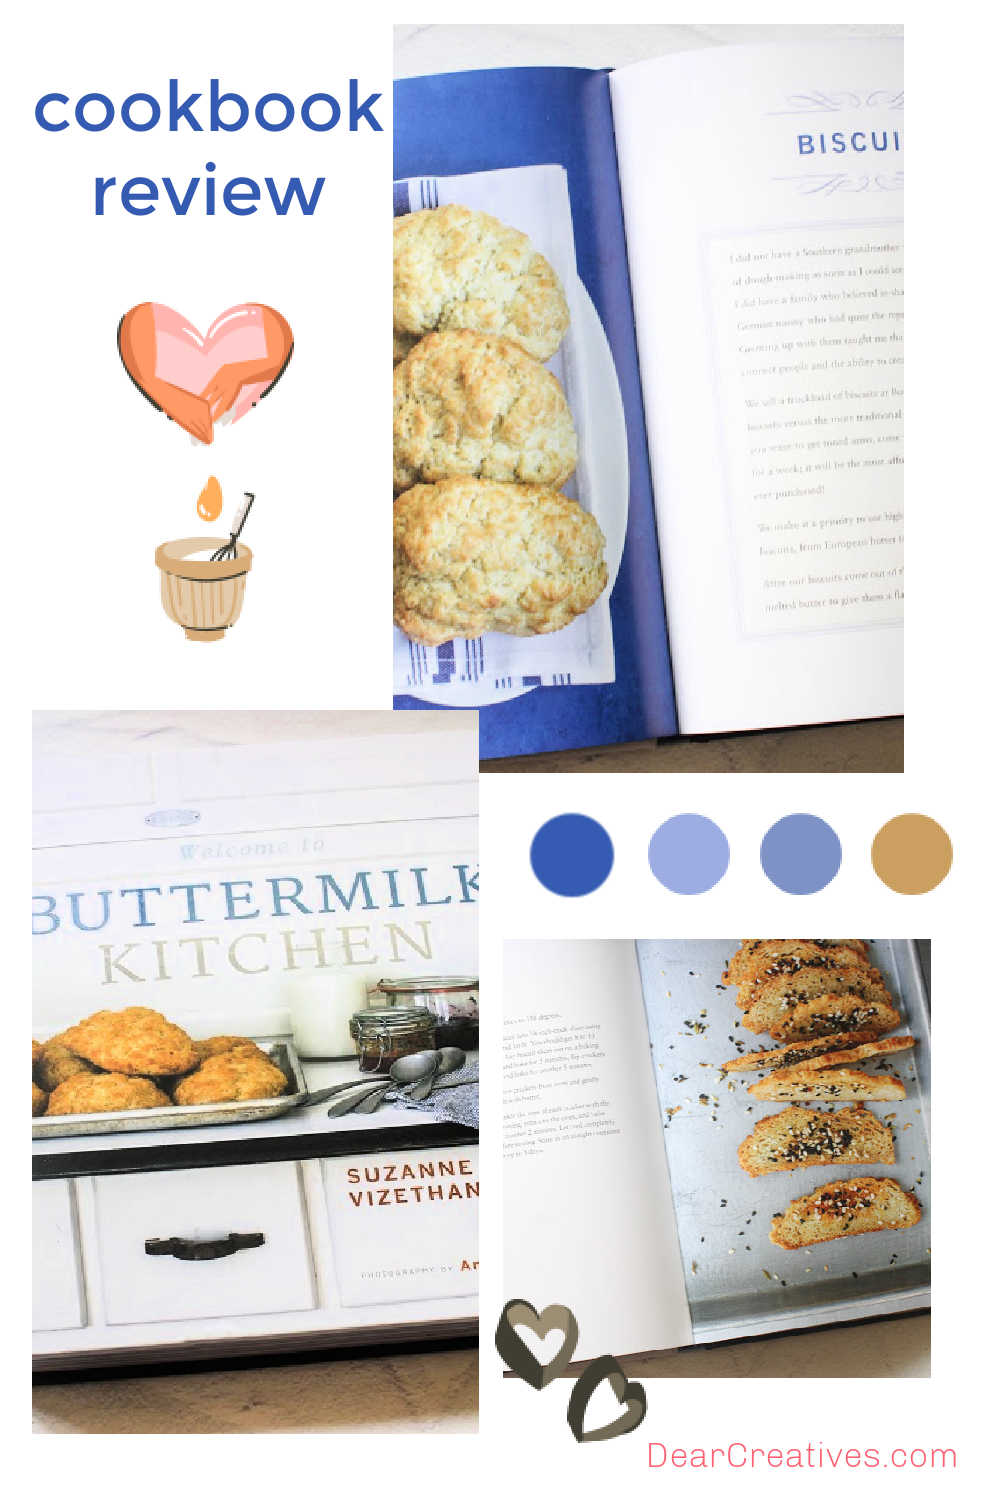 Welcome To Buttermilk Kitchen – Cookbook Review